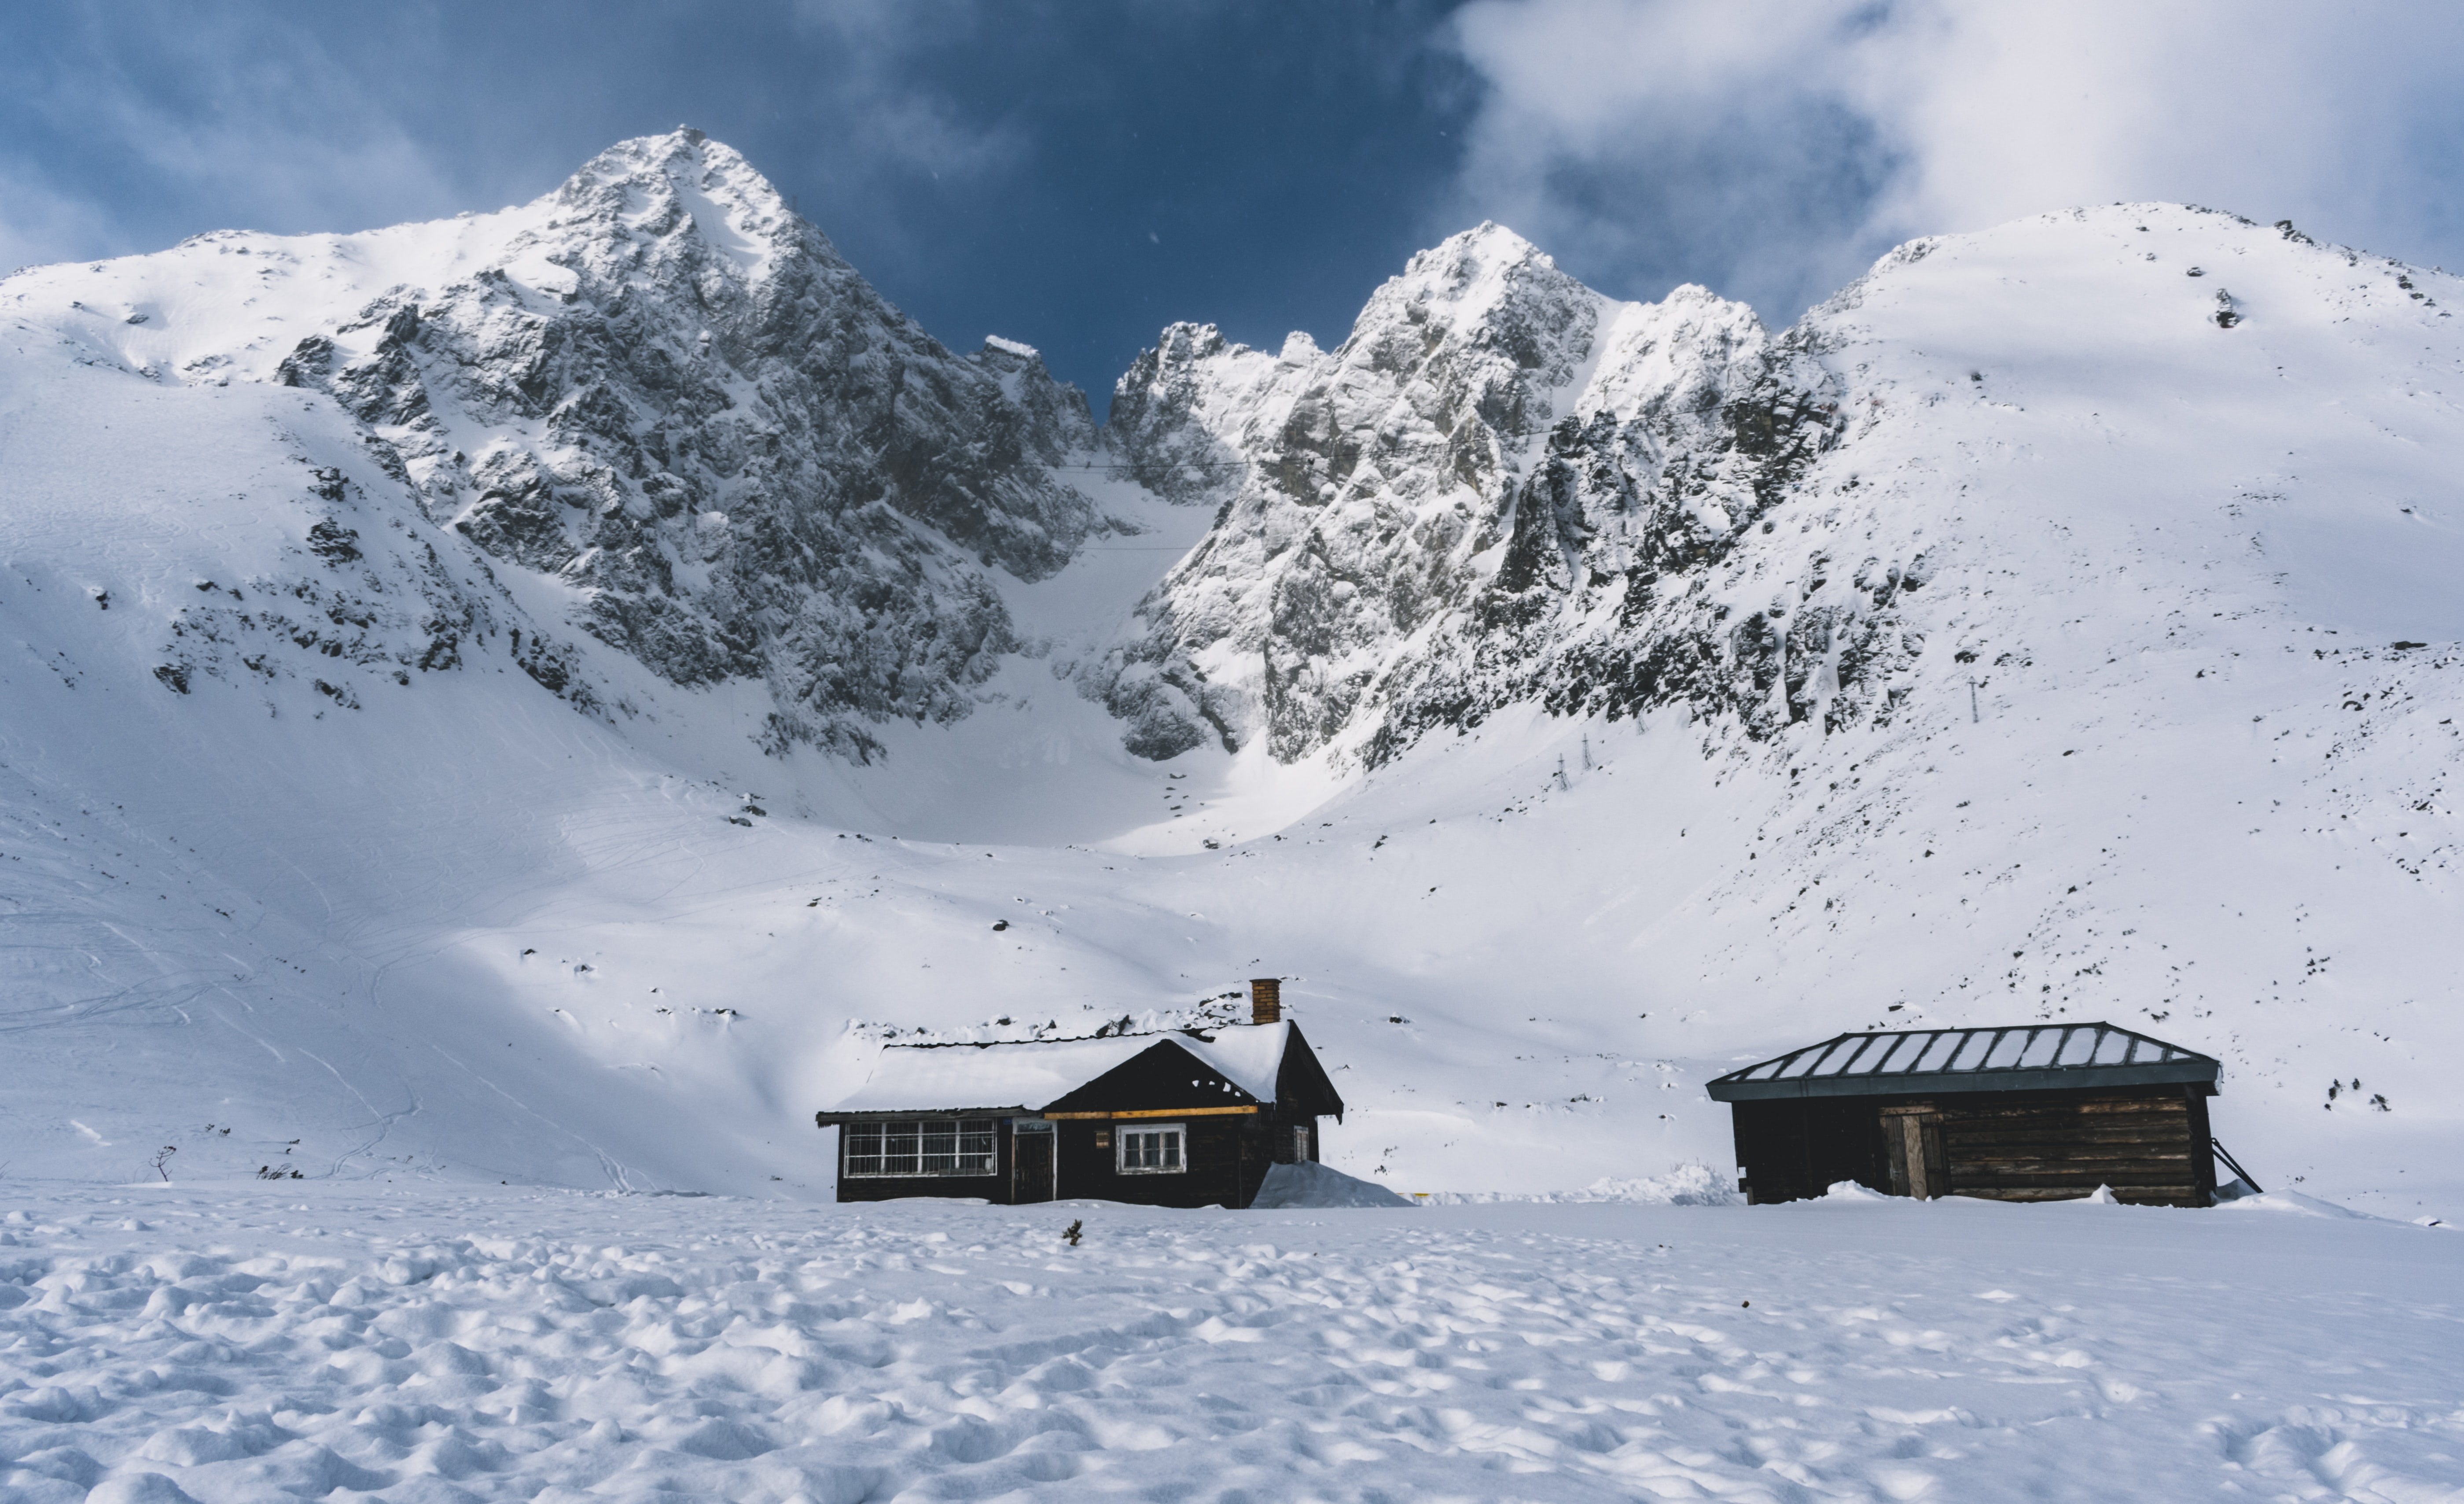 photo of house near snowy mountain